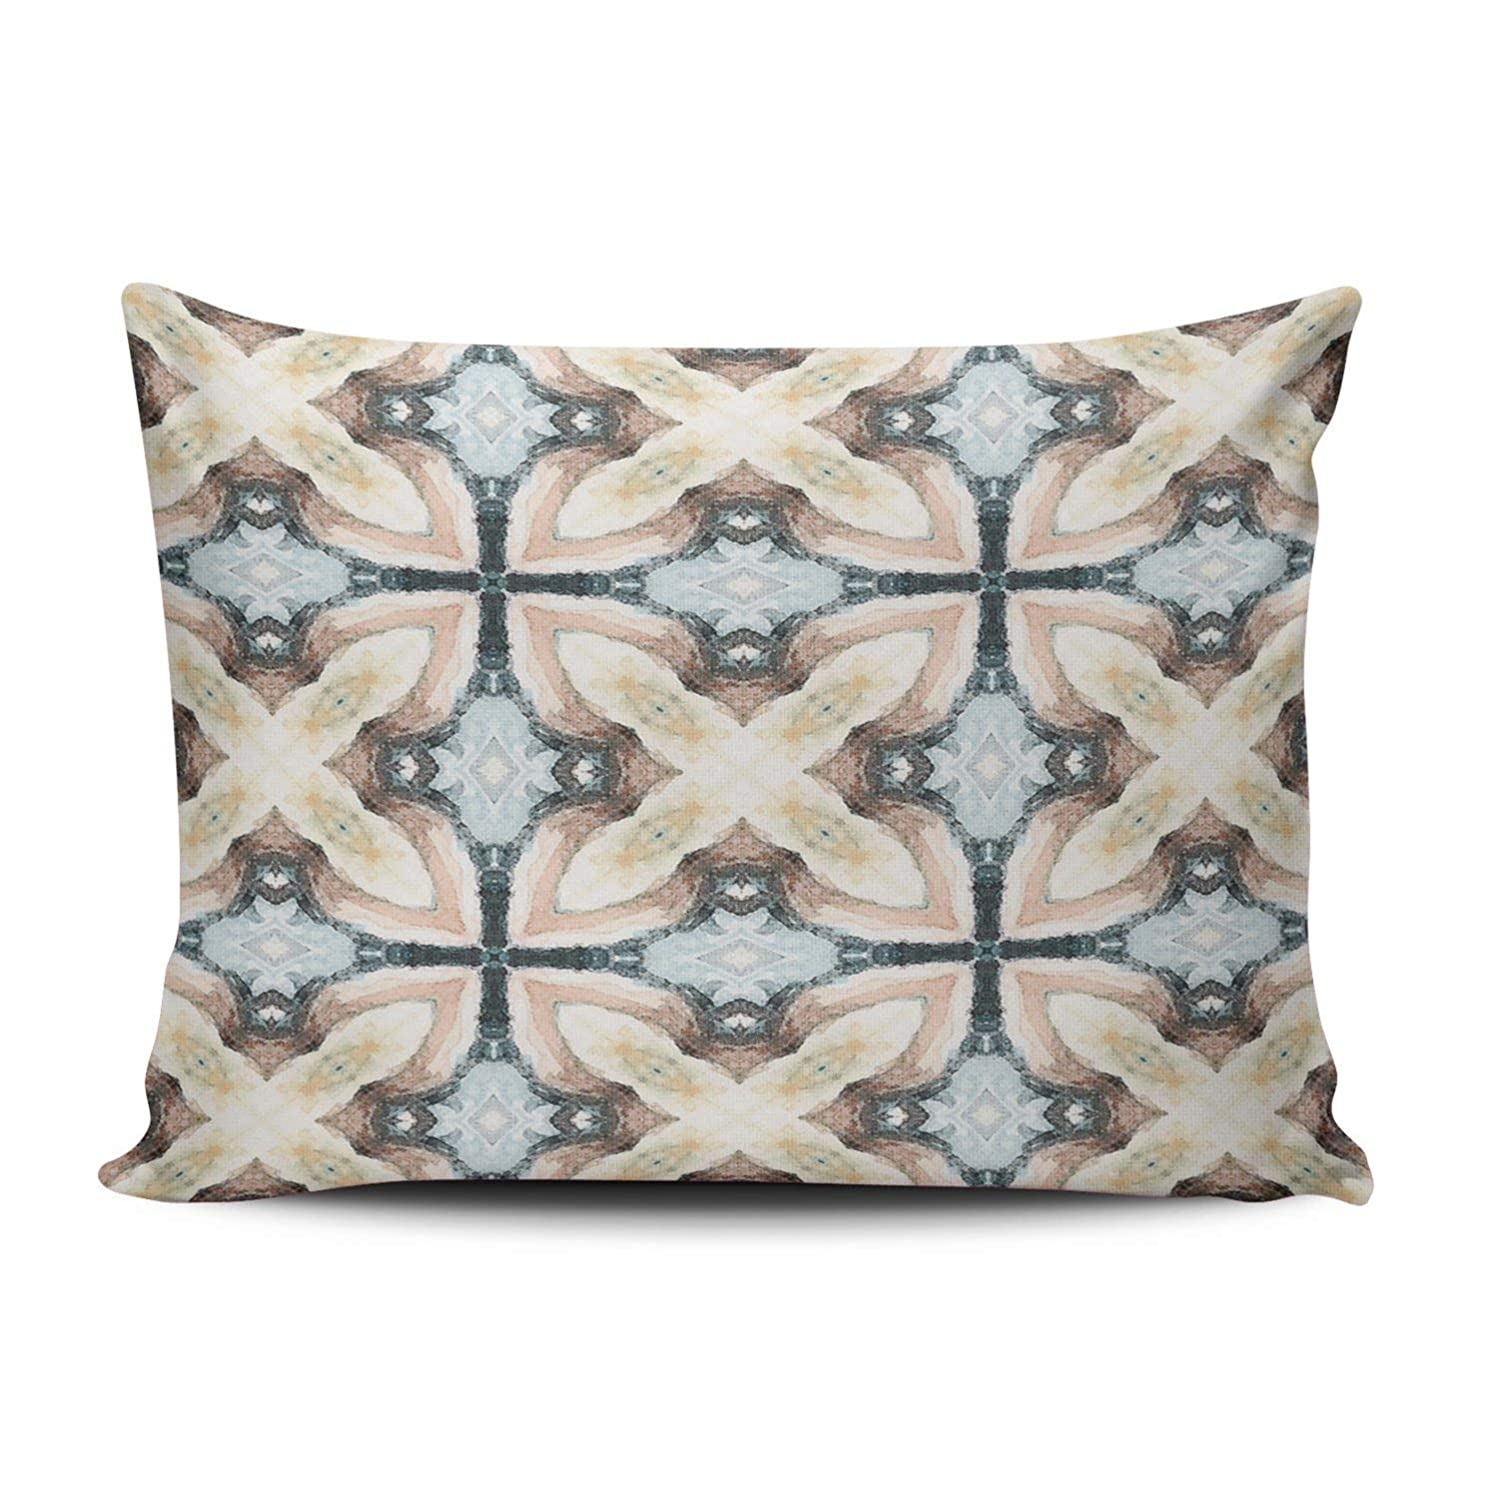 XIUBA Throw Pillow Covers Case Blue Teal Purple Gold Moroccan Tile Pattern Decorative Pillowcase Cushion Cover 26 x 26 inch European Size One Side Design Printed